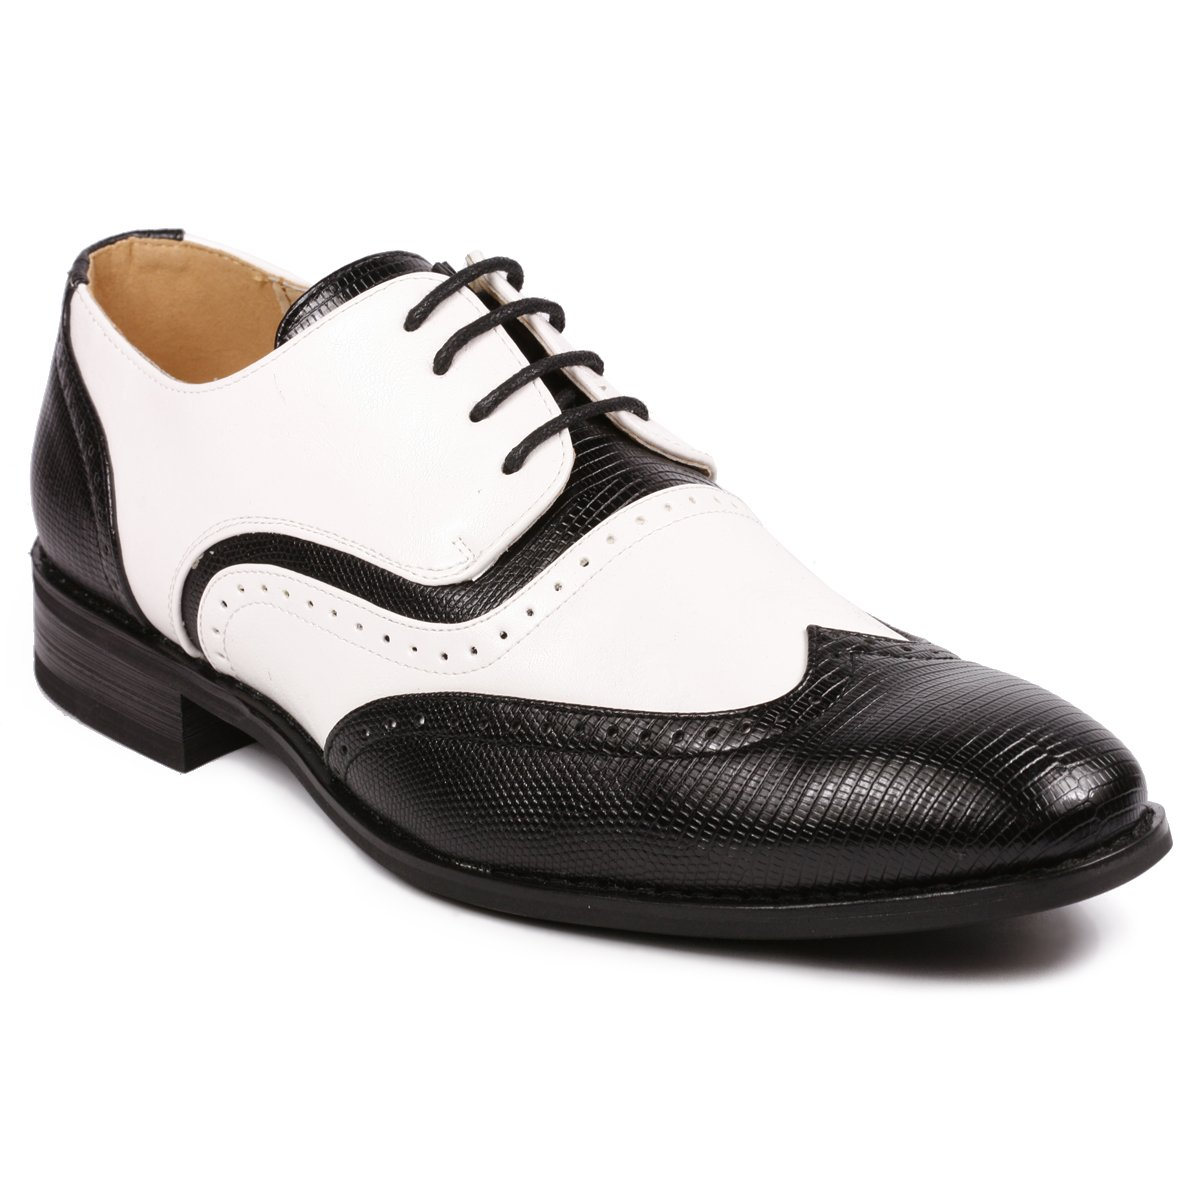 1920s Men's Clothing Metrocharm MC113 Mens Wing Tip Perforated Lace Up Oxford Dress Shoes $39.99 AT vintagedancer.com